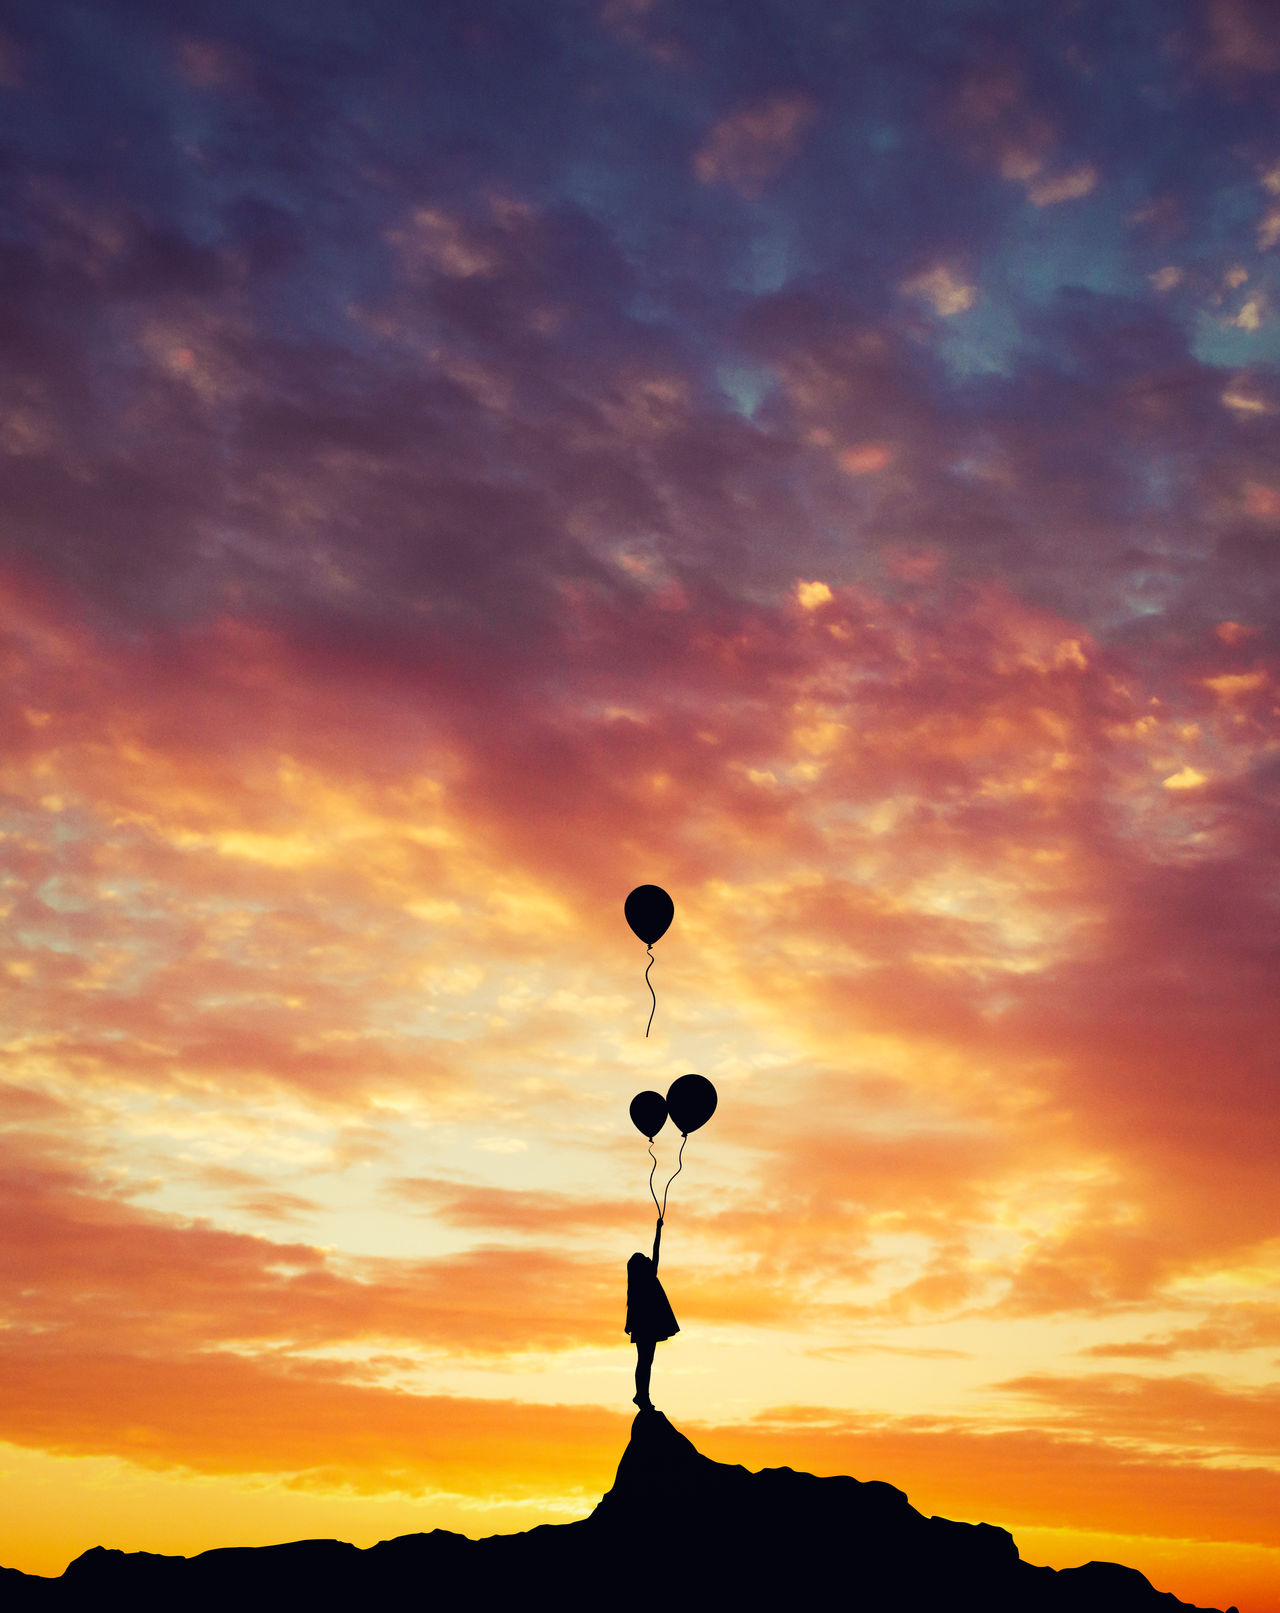 Balloons Birthday Child Cute Happy Happy Birthday! Kid Mountain Nature Silhouette Silhouette_collection Silhouettes Success Successful Sunrise Sunrise_sunsets_aroundworld Sunset Sunset_collection Sunshine